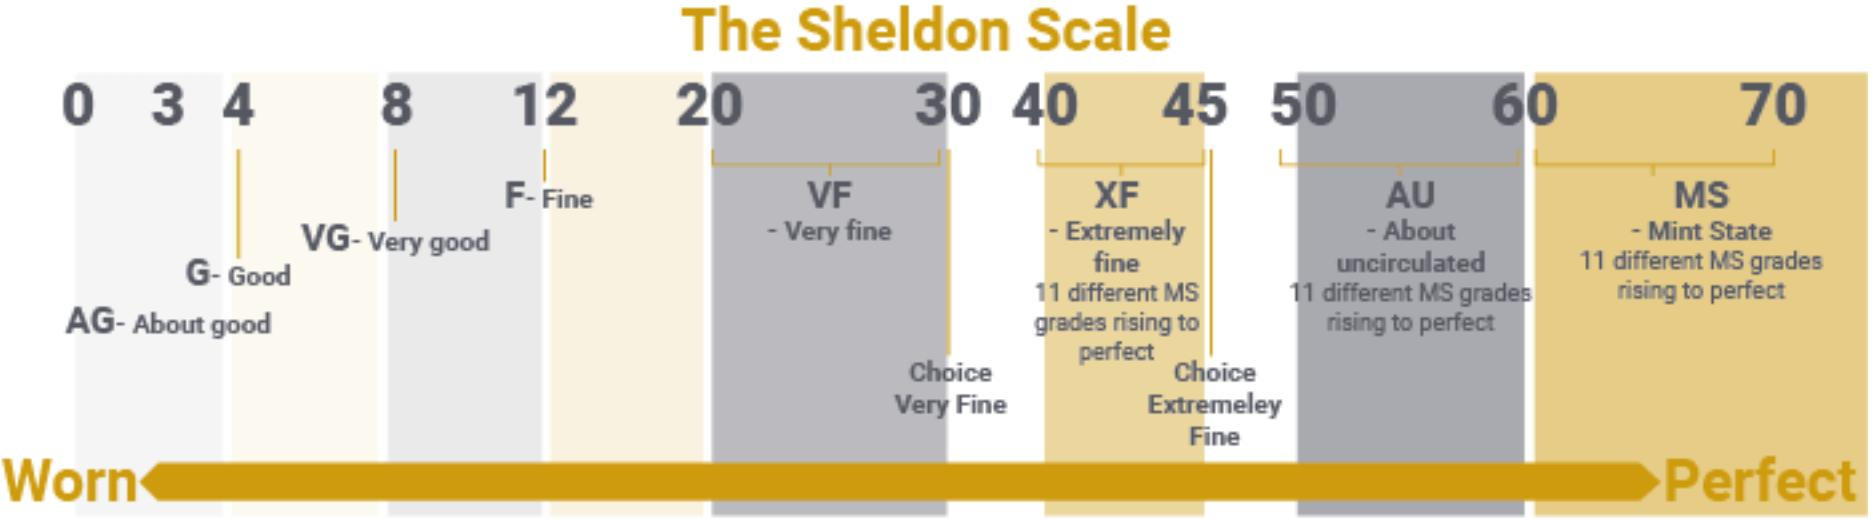 Sheldon Scale - coin collecting value guide